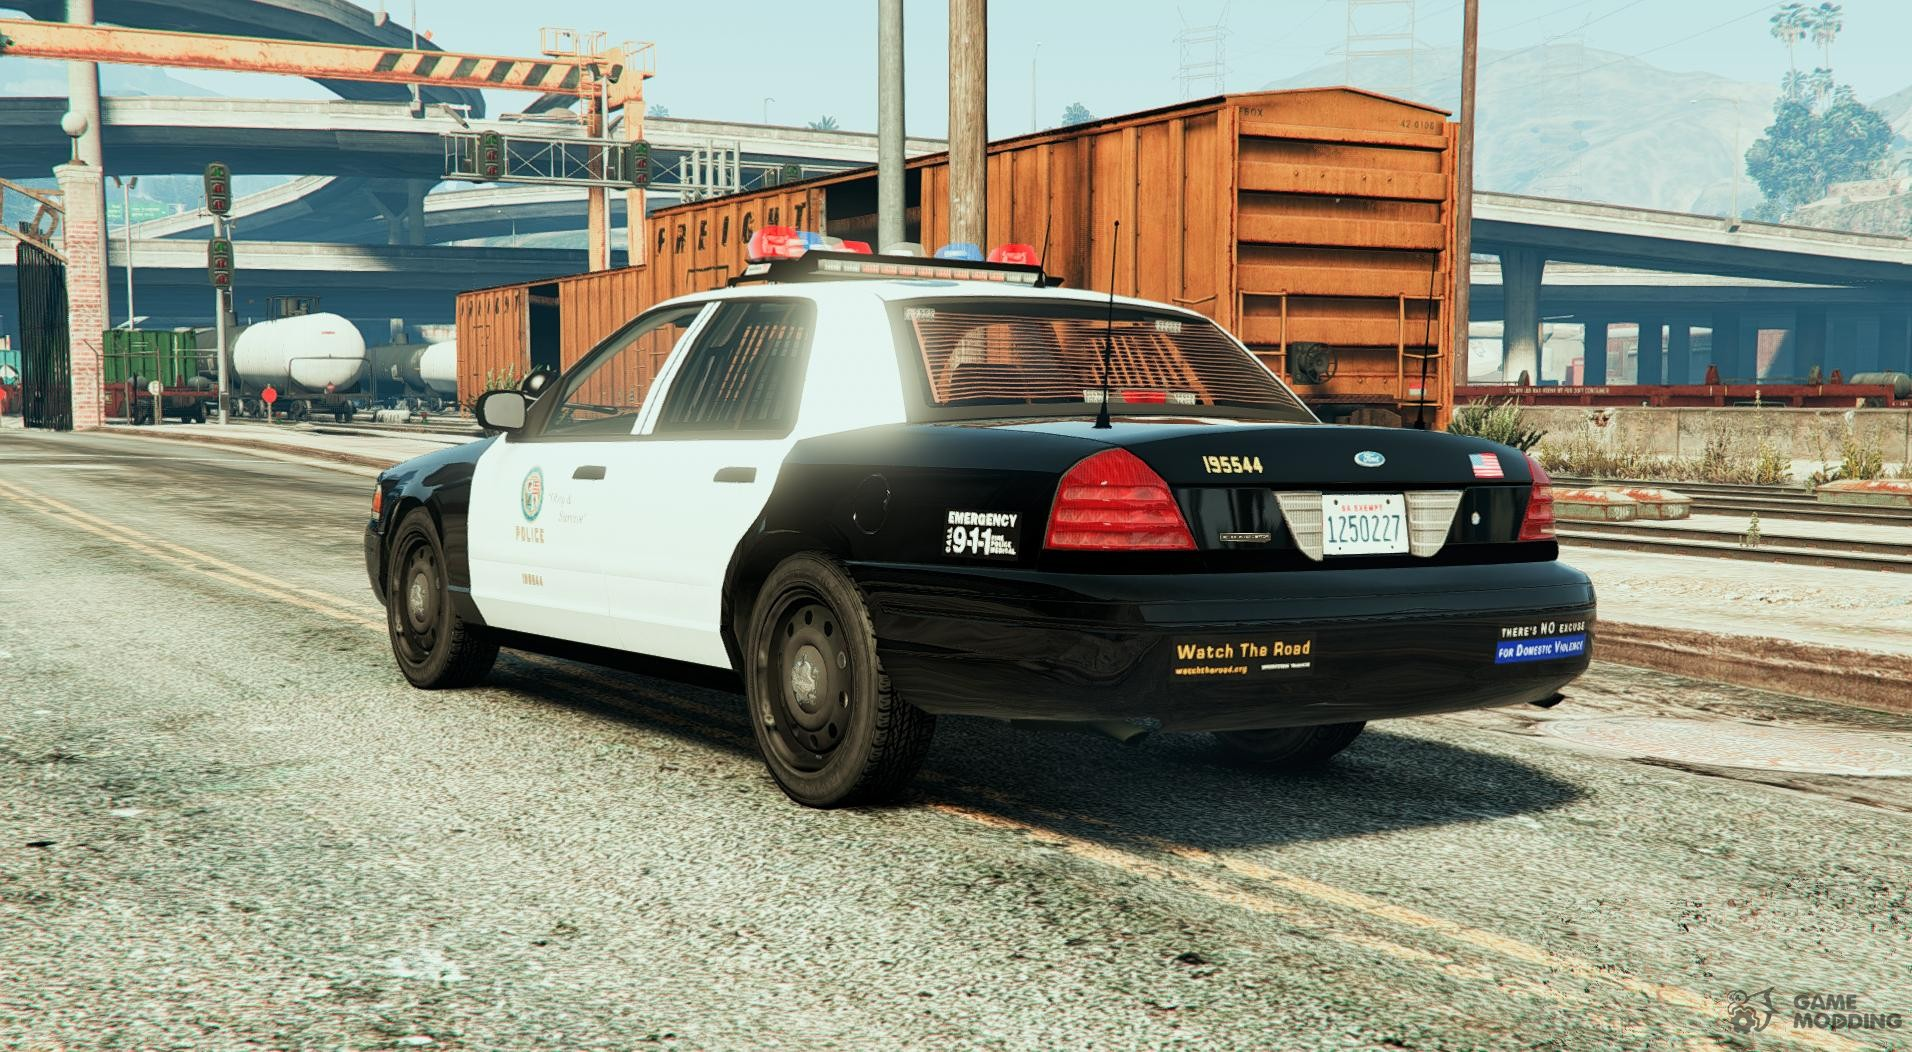 Police crown victoria federal signal vector for gta 5 police crown victoria federal signal vector for gta 5 left view aloadofball Gallery